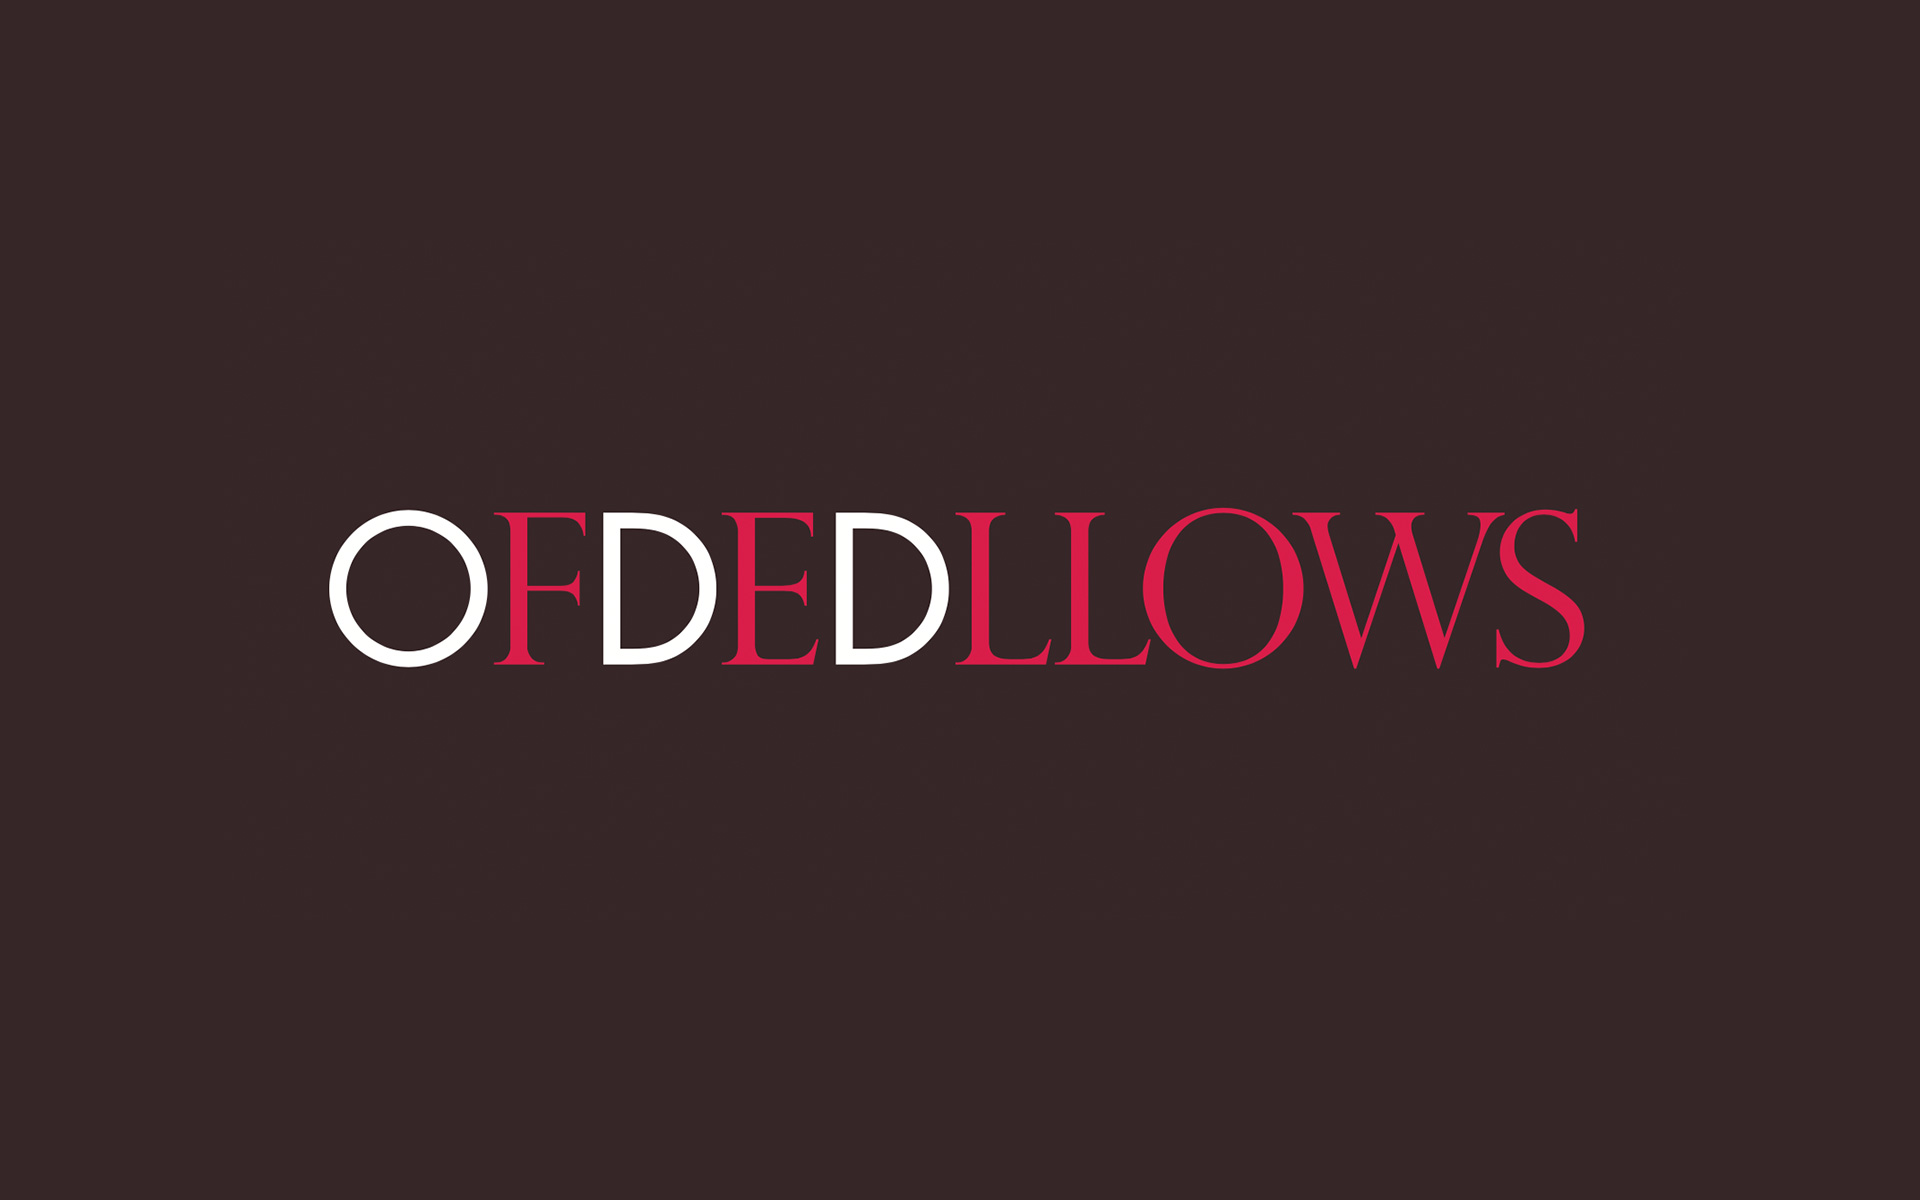 Oddfellows master logo large